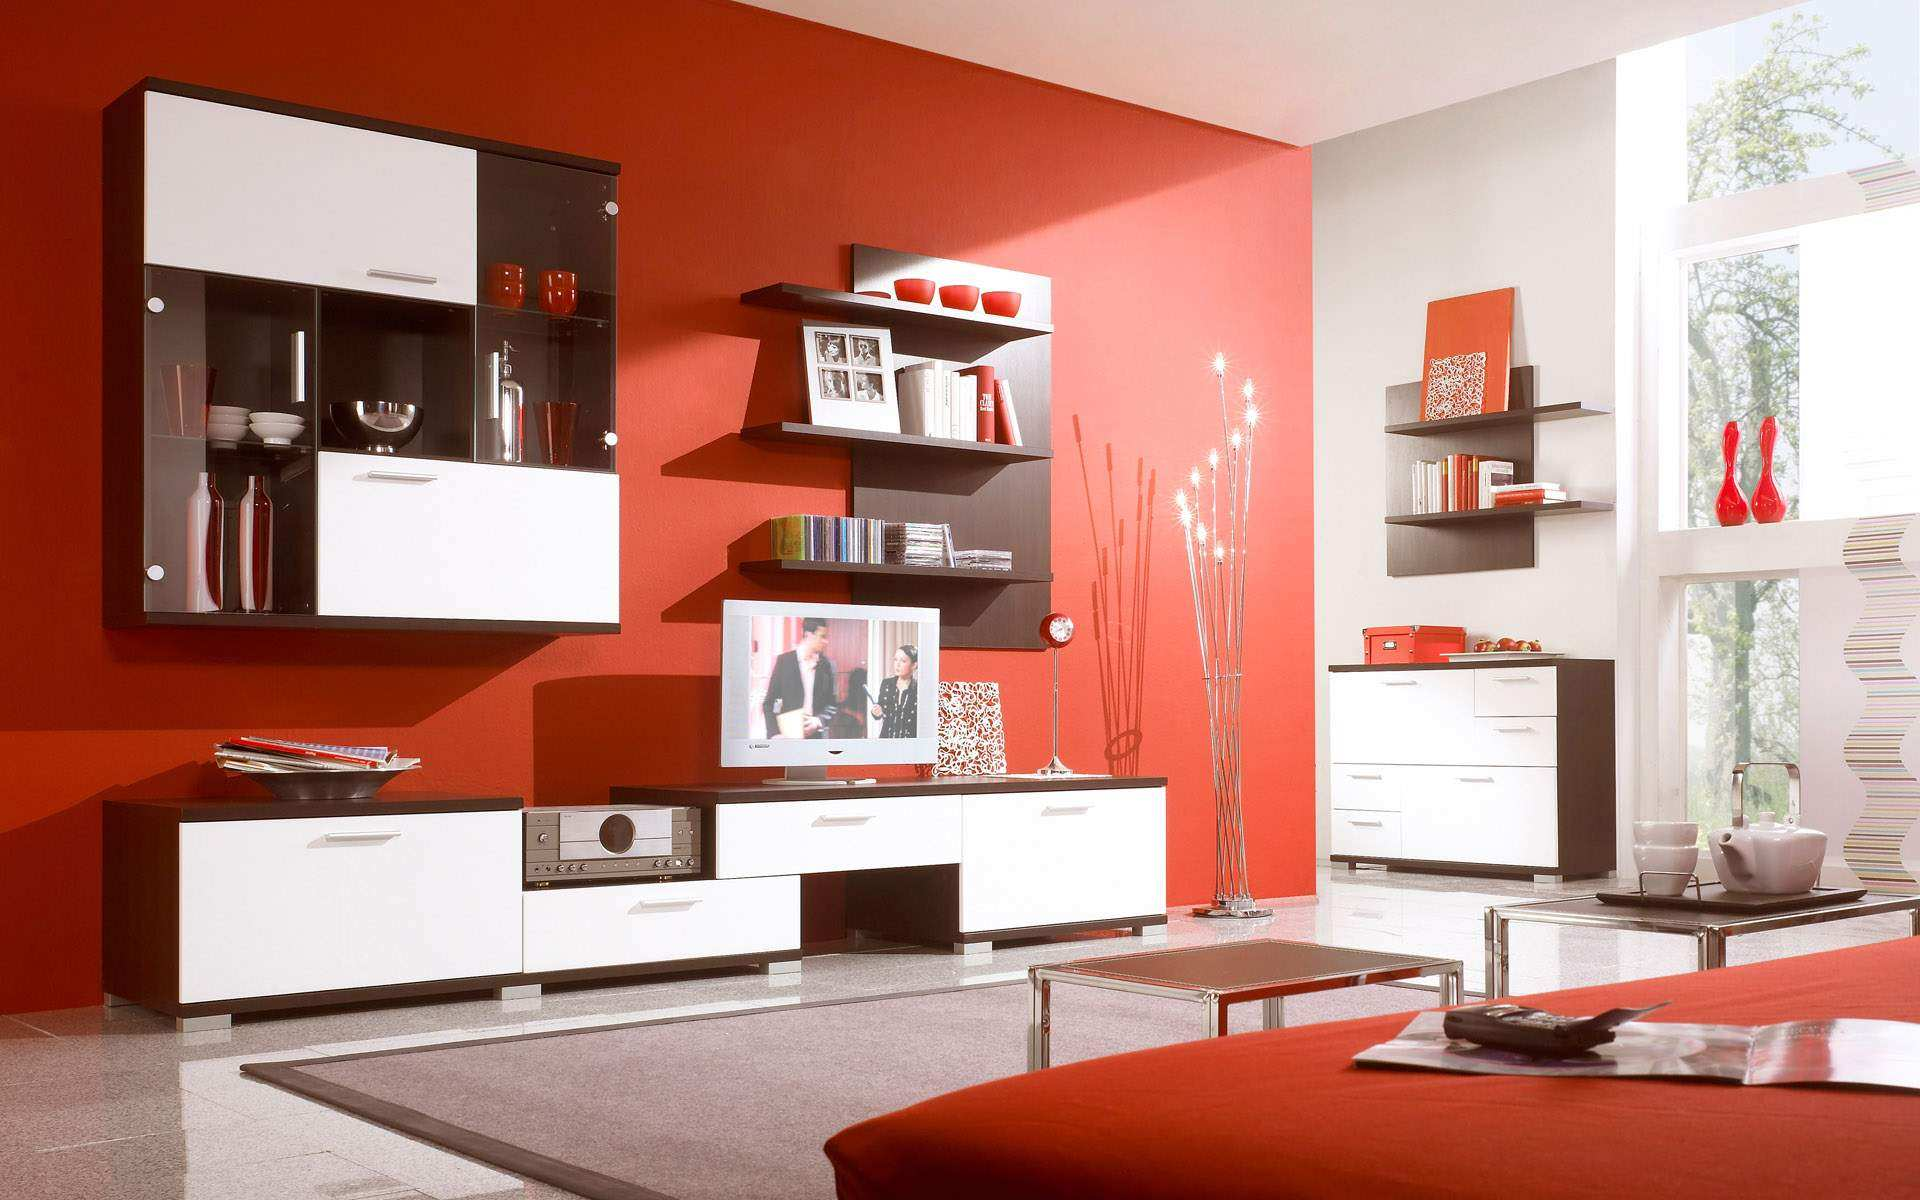 pantoneview home product interiors forecast trend view inspire and pantone interior